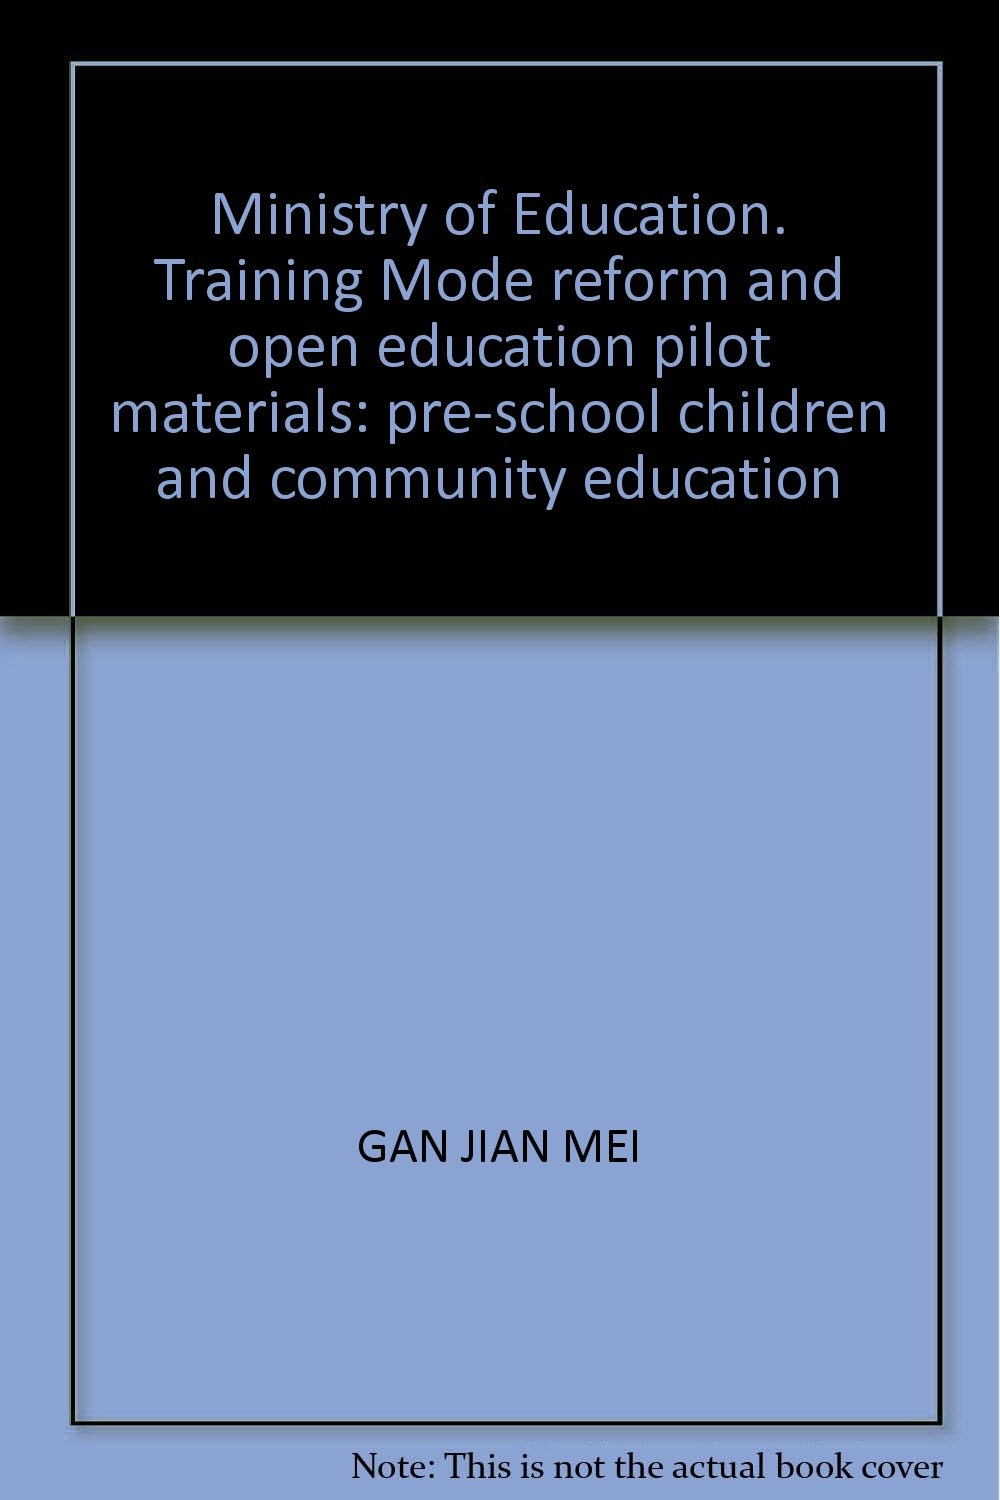 Ministry of Education. Training Mode reform and open education pilot materials: pre-school children and community education ebook